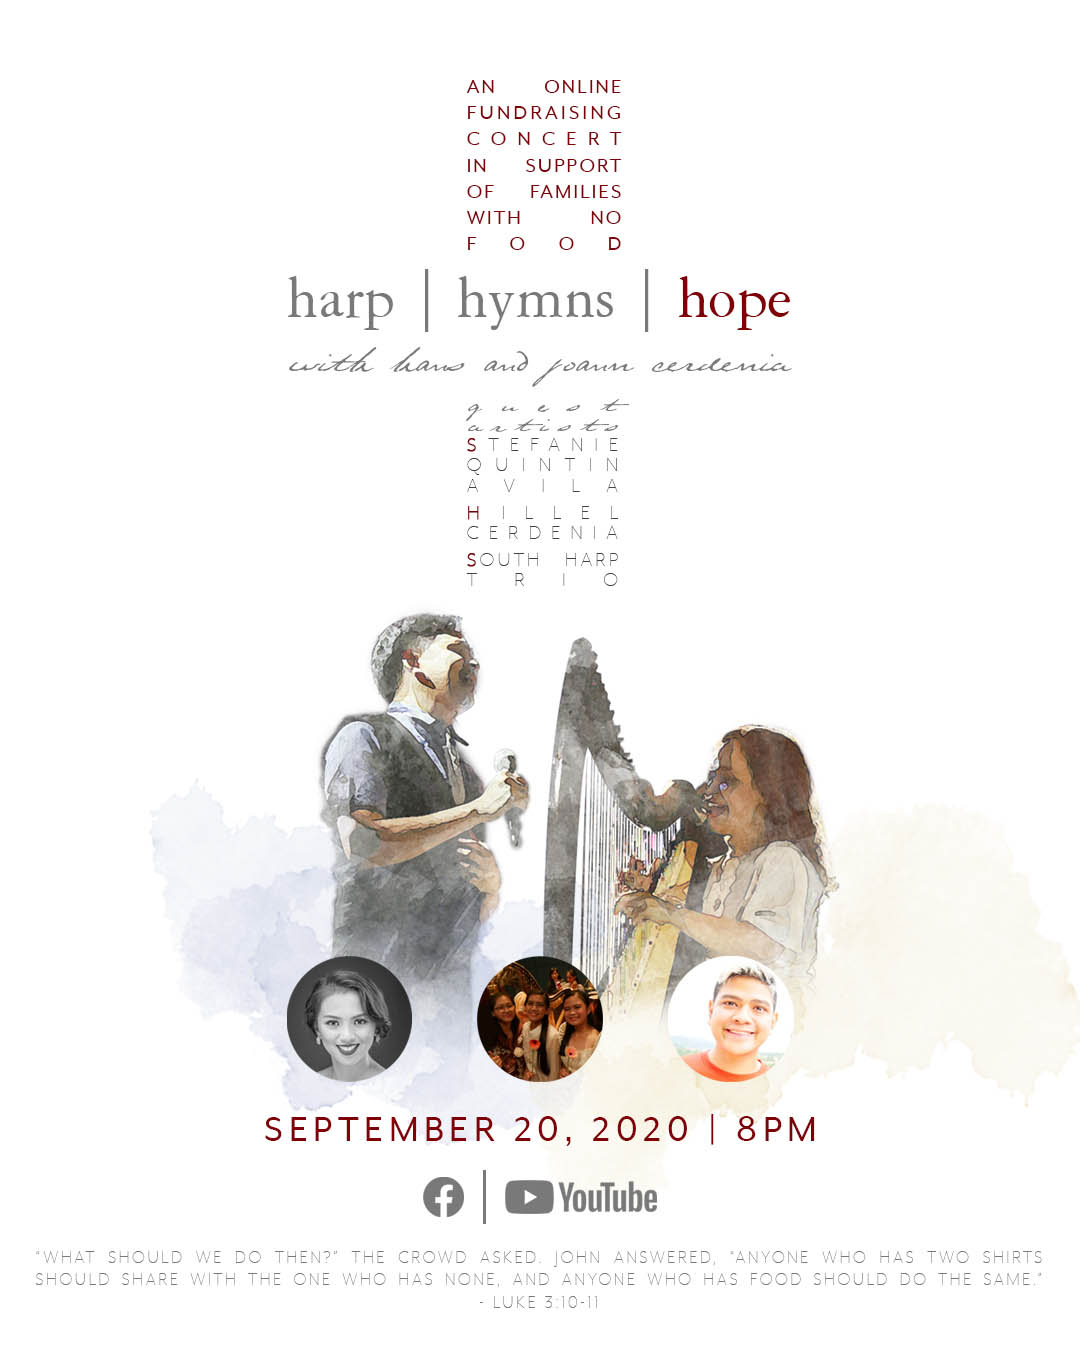 Poster: Harp, hymns, and hope